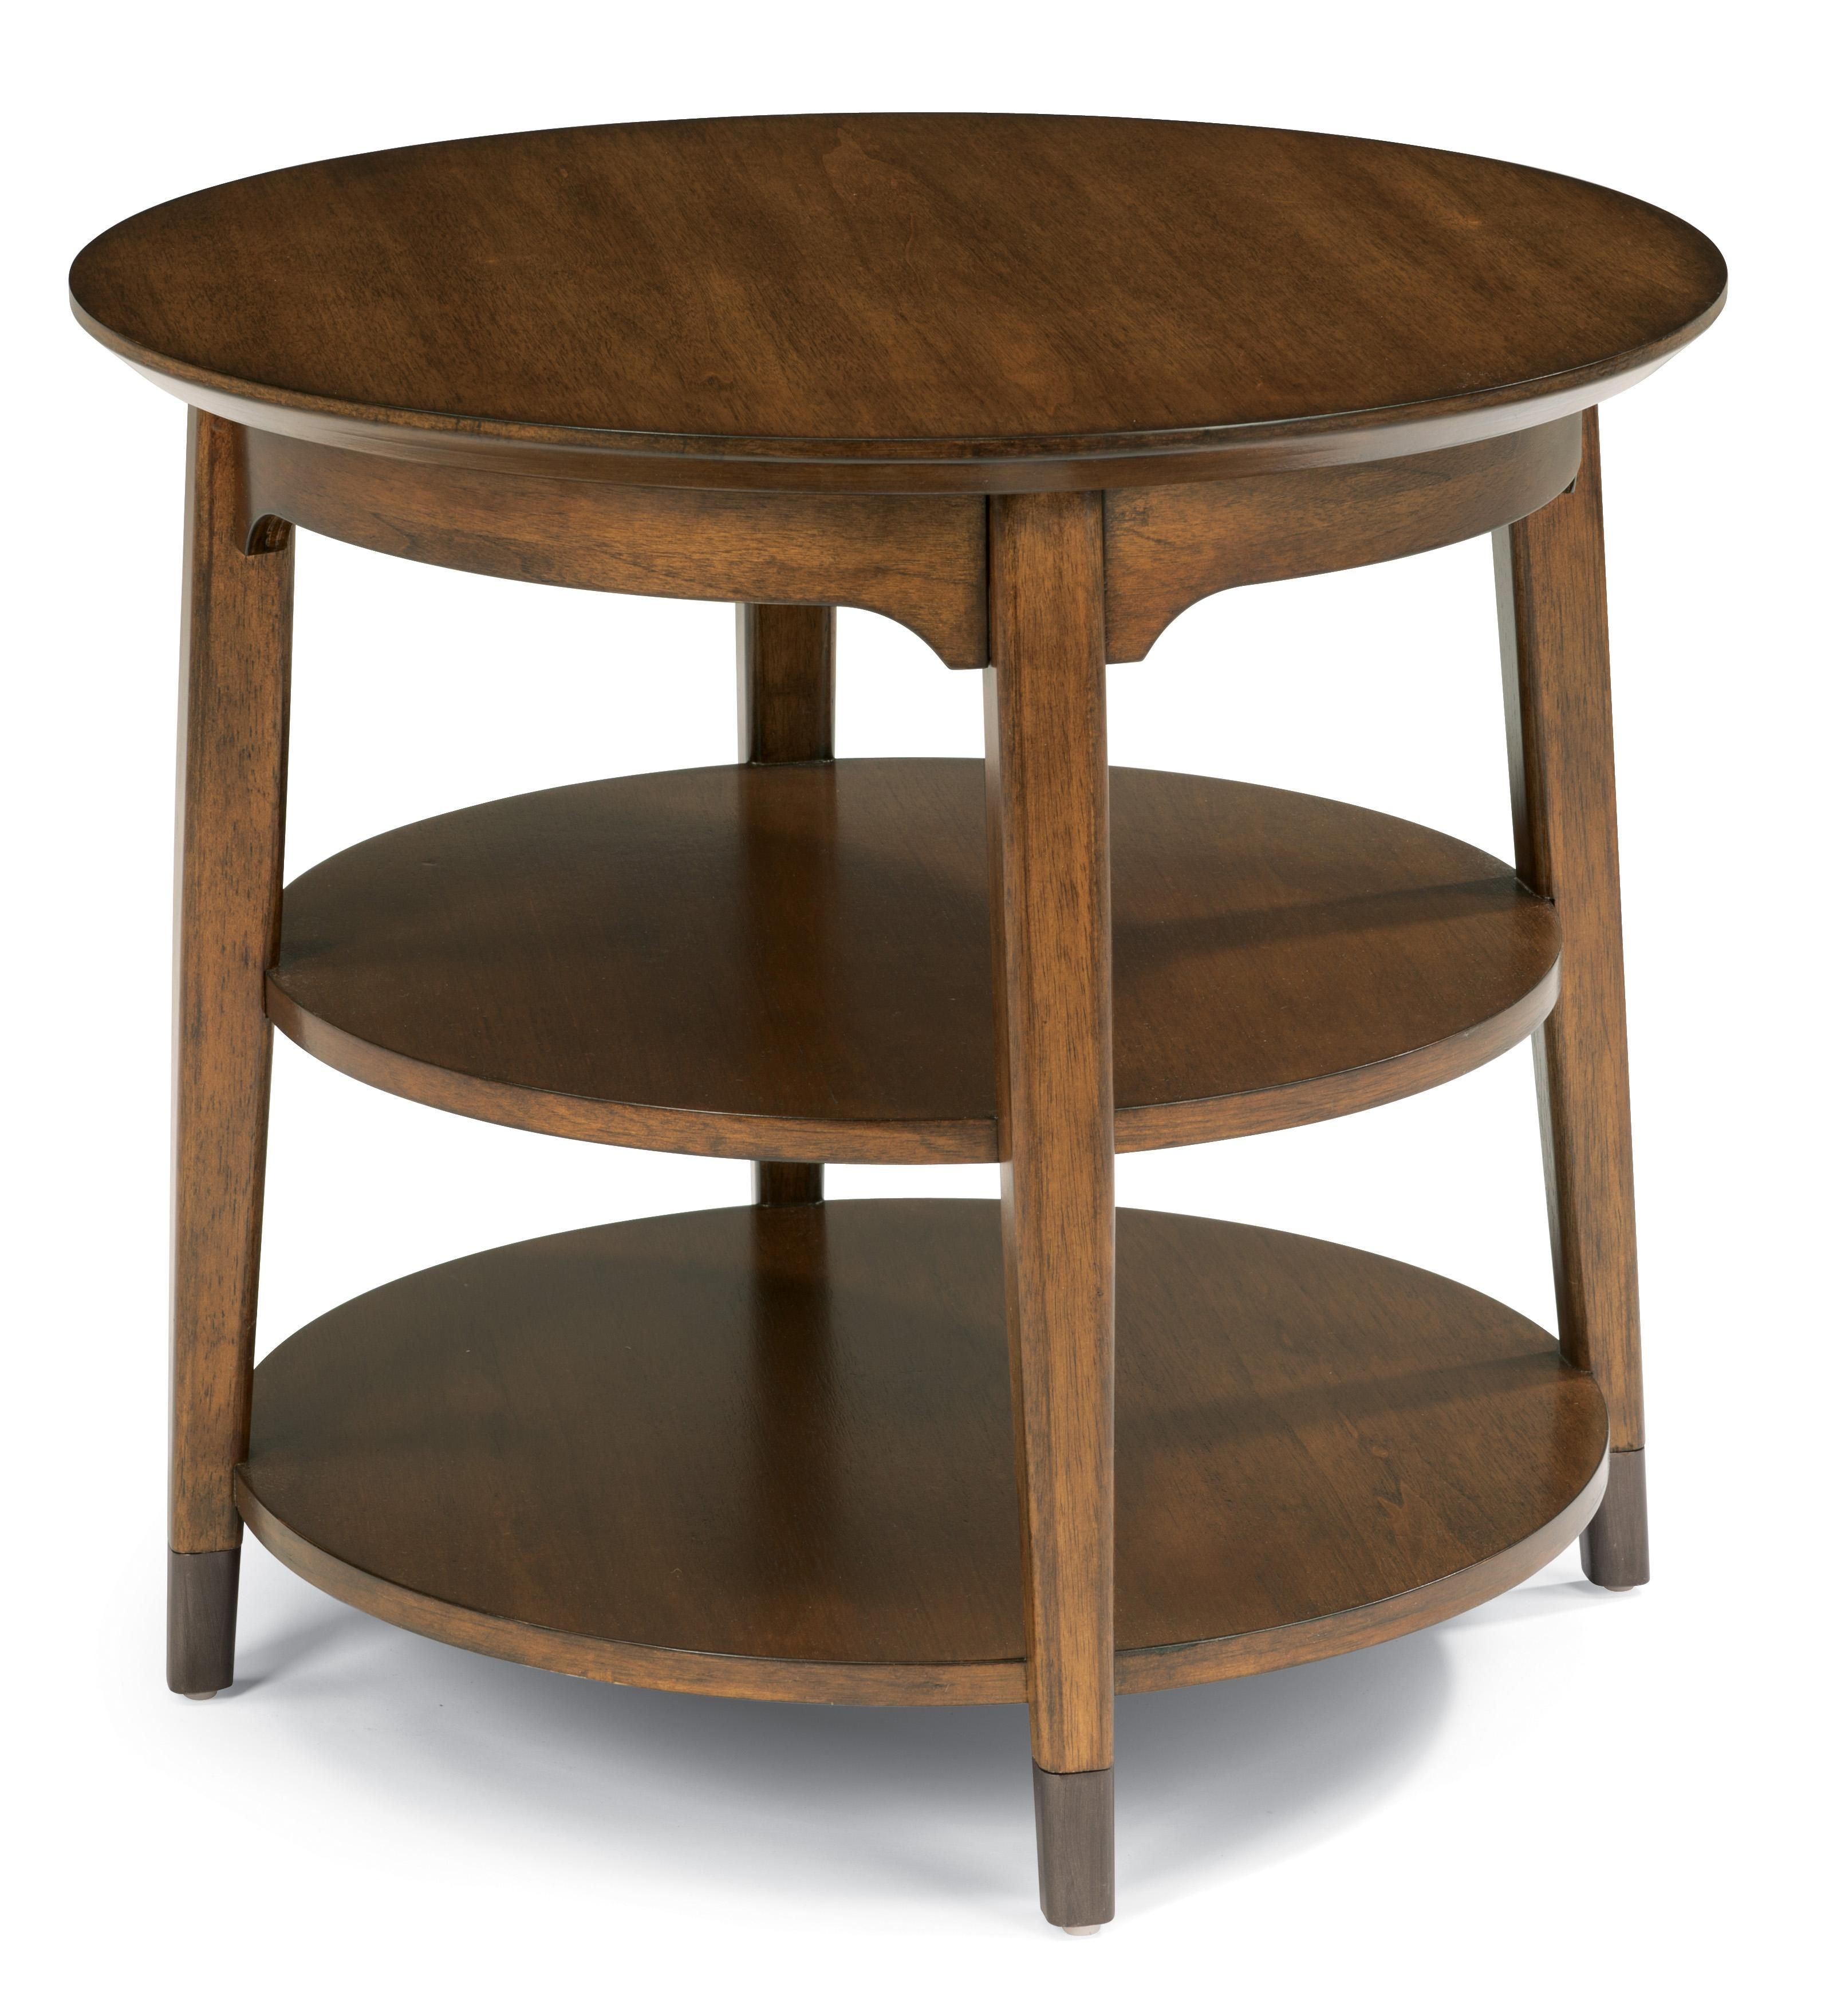 Flexsteel Gemini round lamp table this one matches the coffee